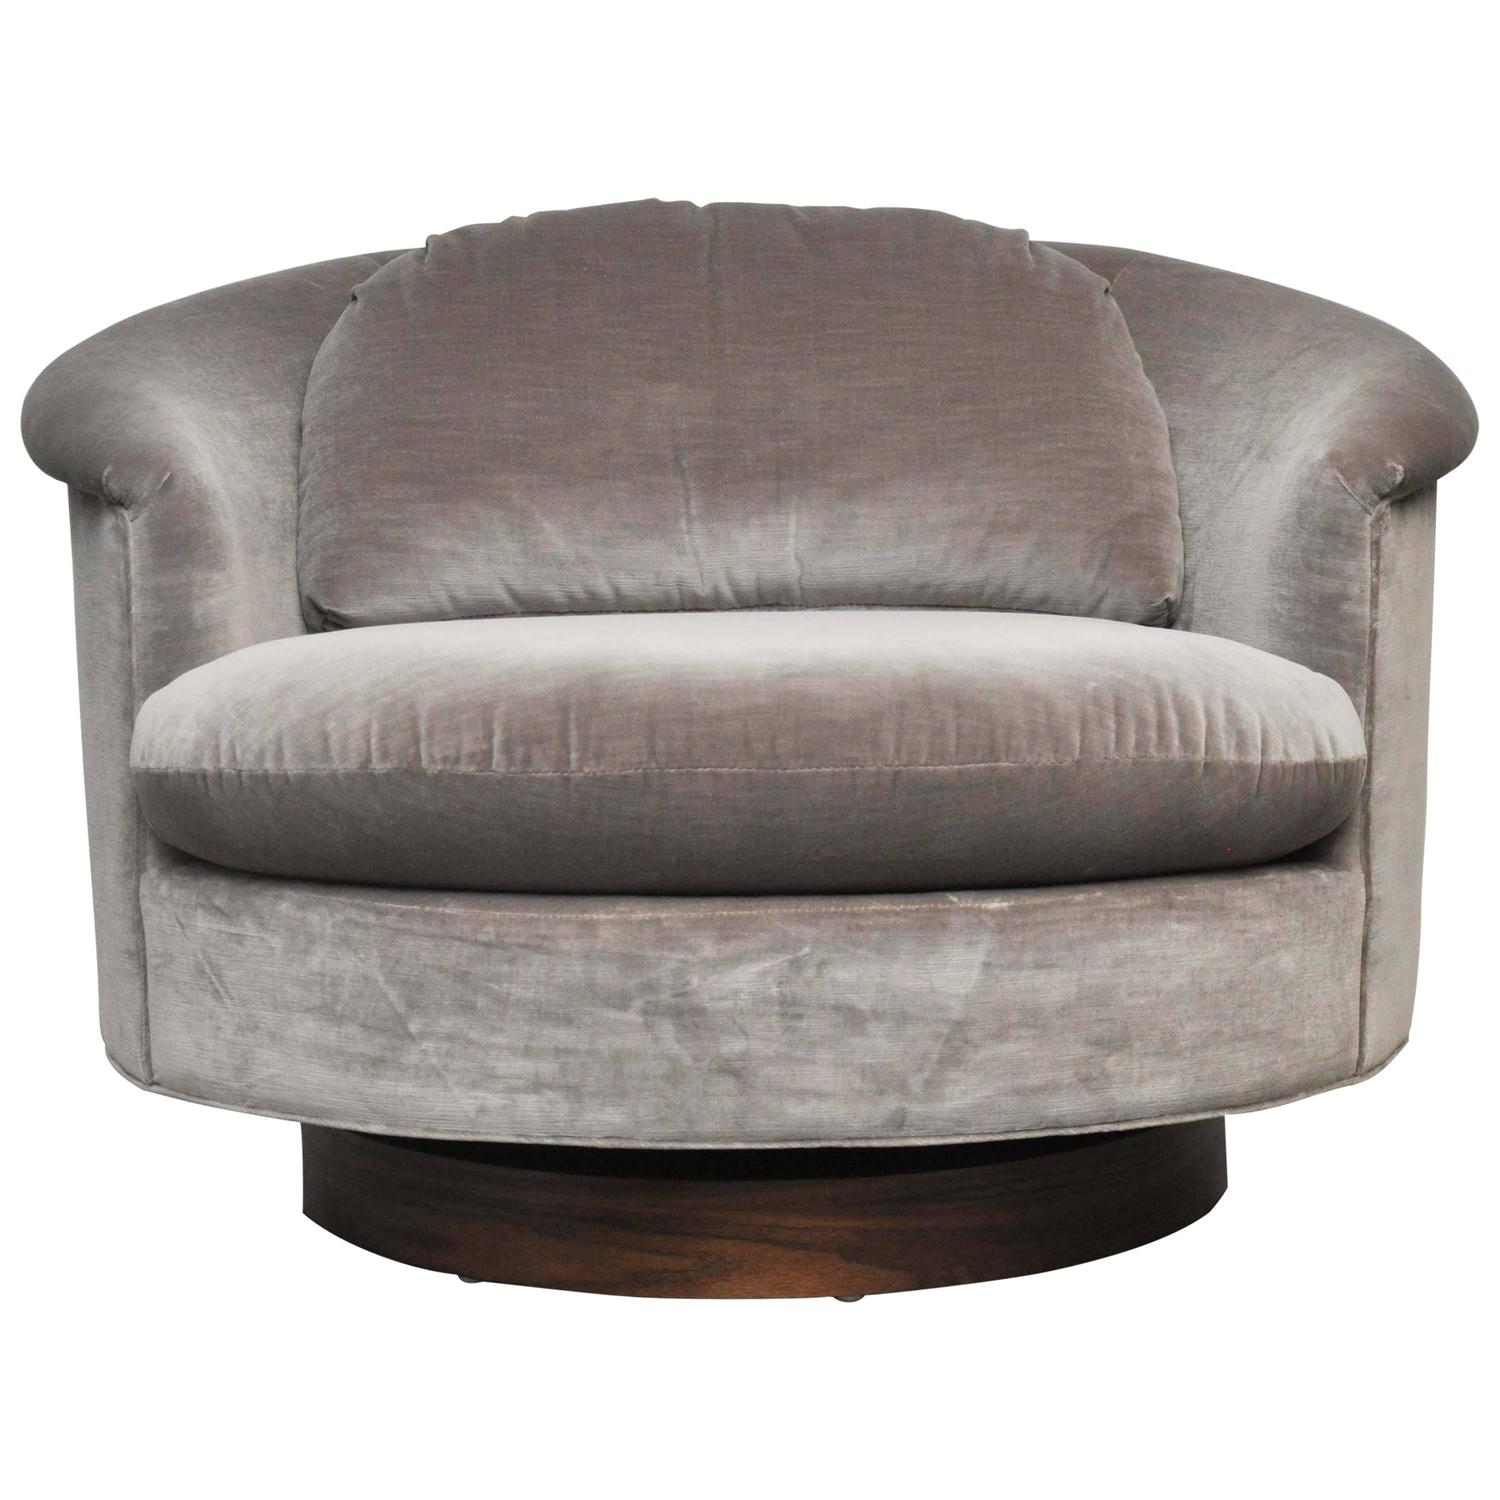 swivel chair large stainless steel hsn code milo baughman at 1stdibs